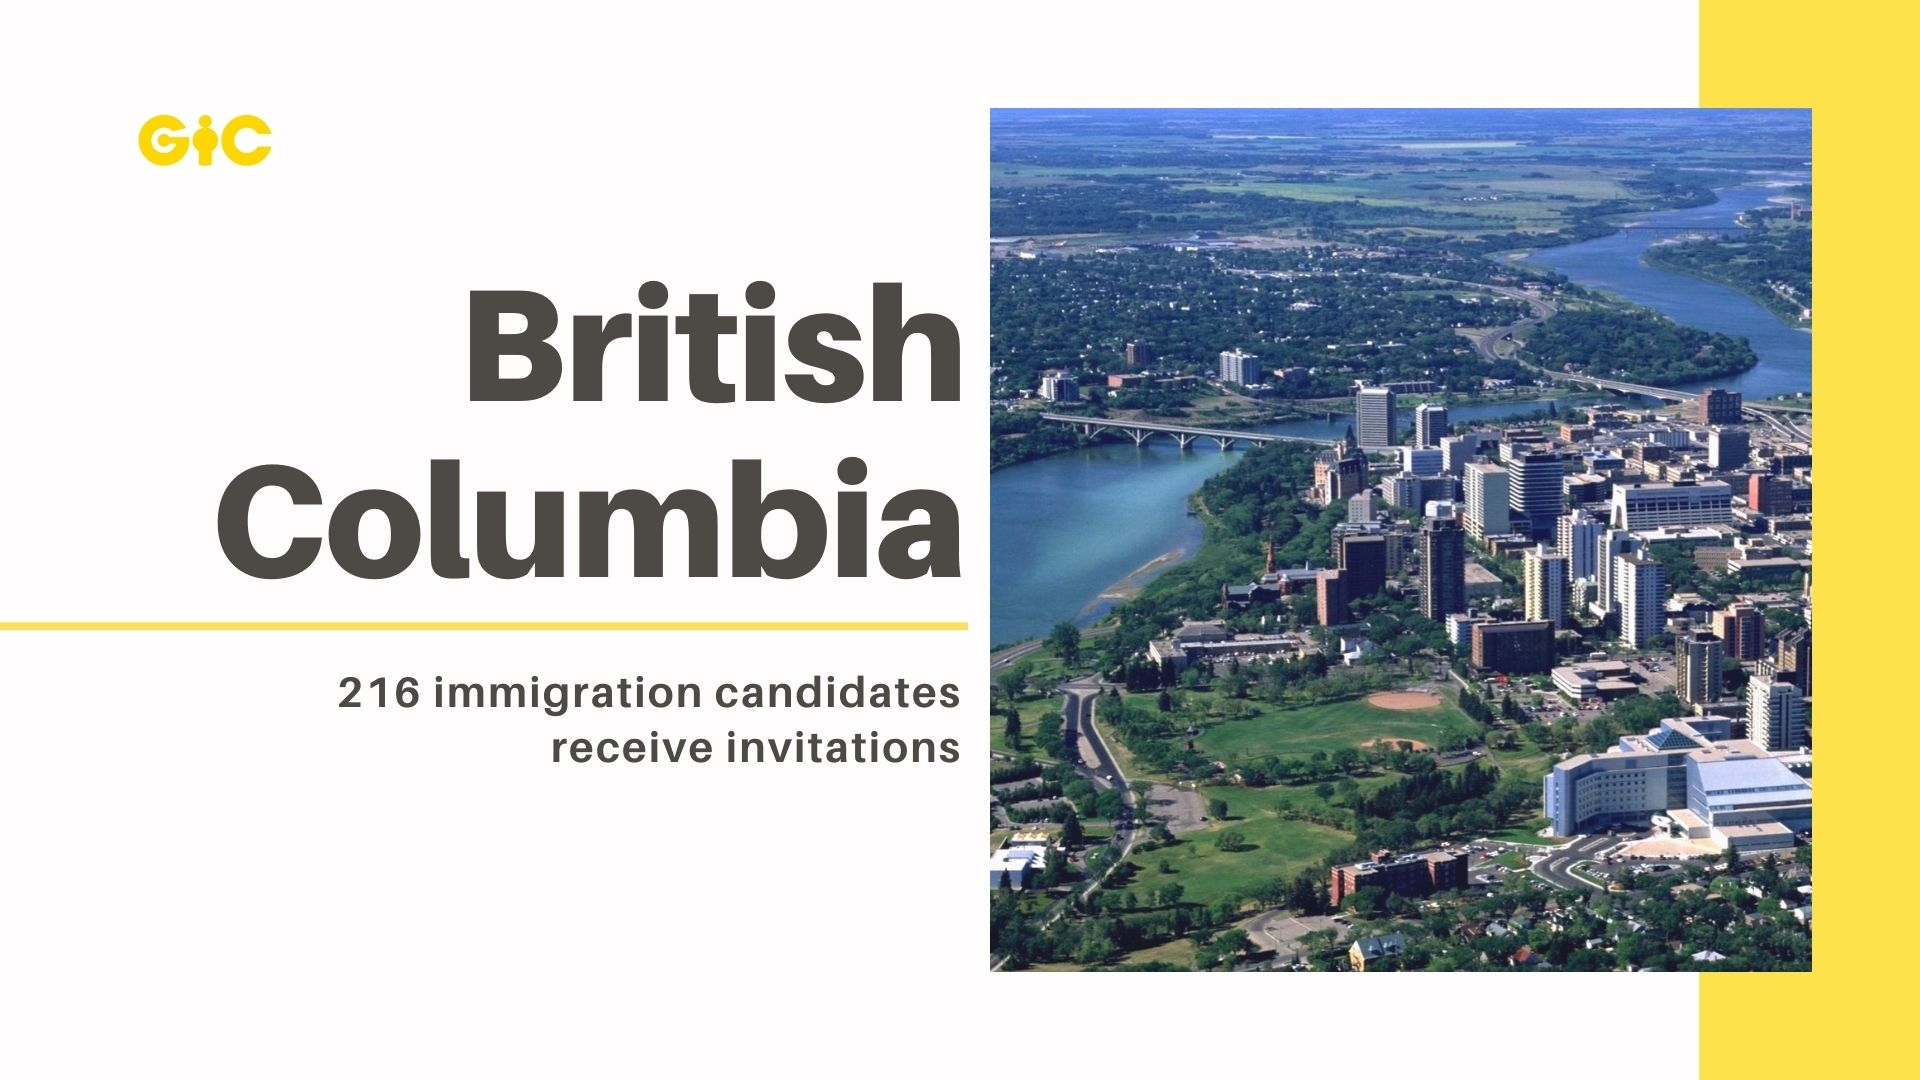 BC PNP 216 immigration candidates receive invitations